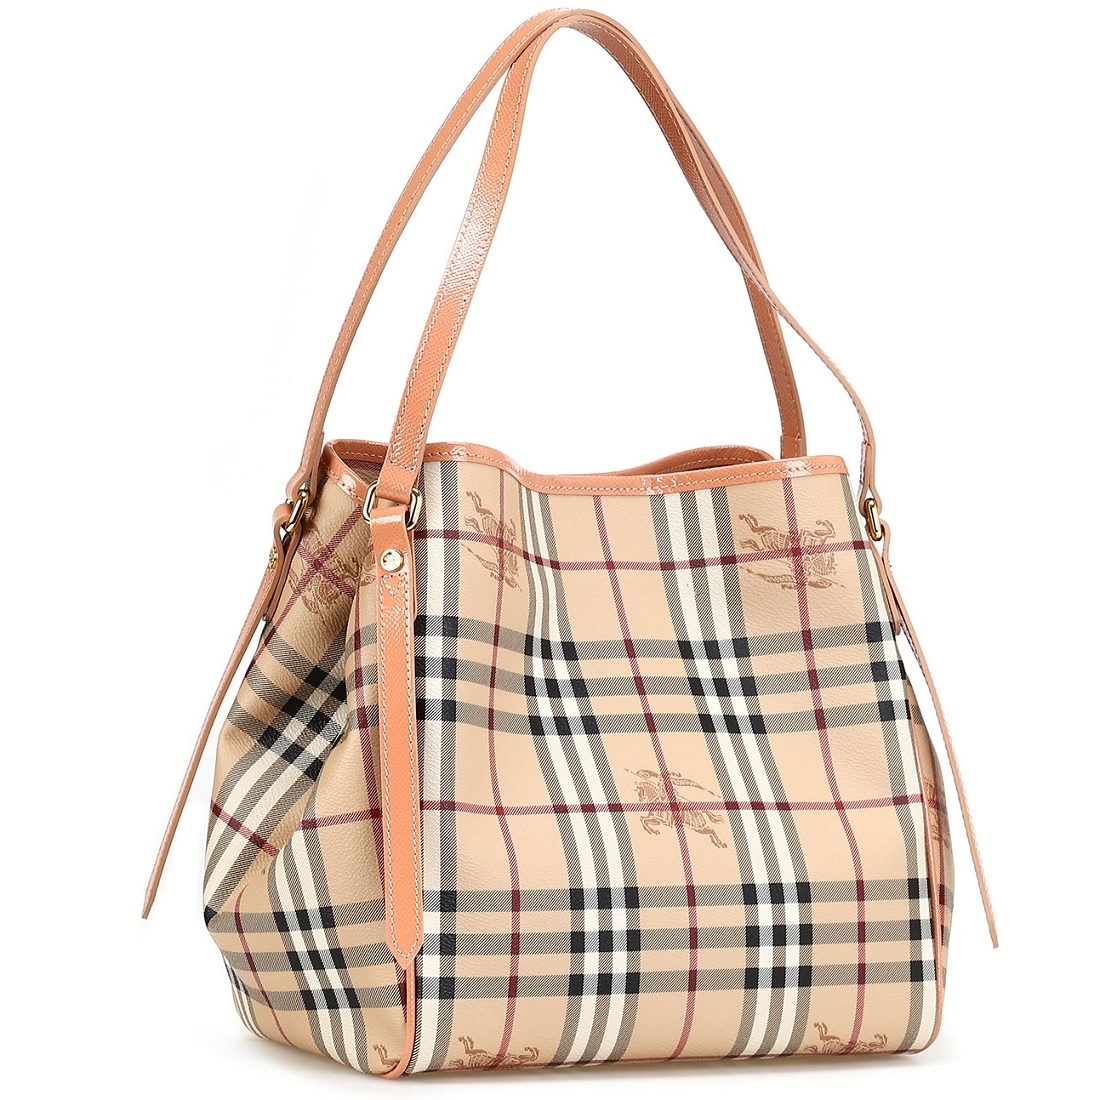 ... Picture of Burberry Haymarket Patent Colors Small Canterbury Tote ... 649dc43859f37